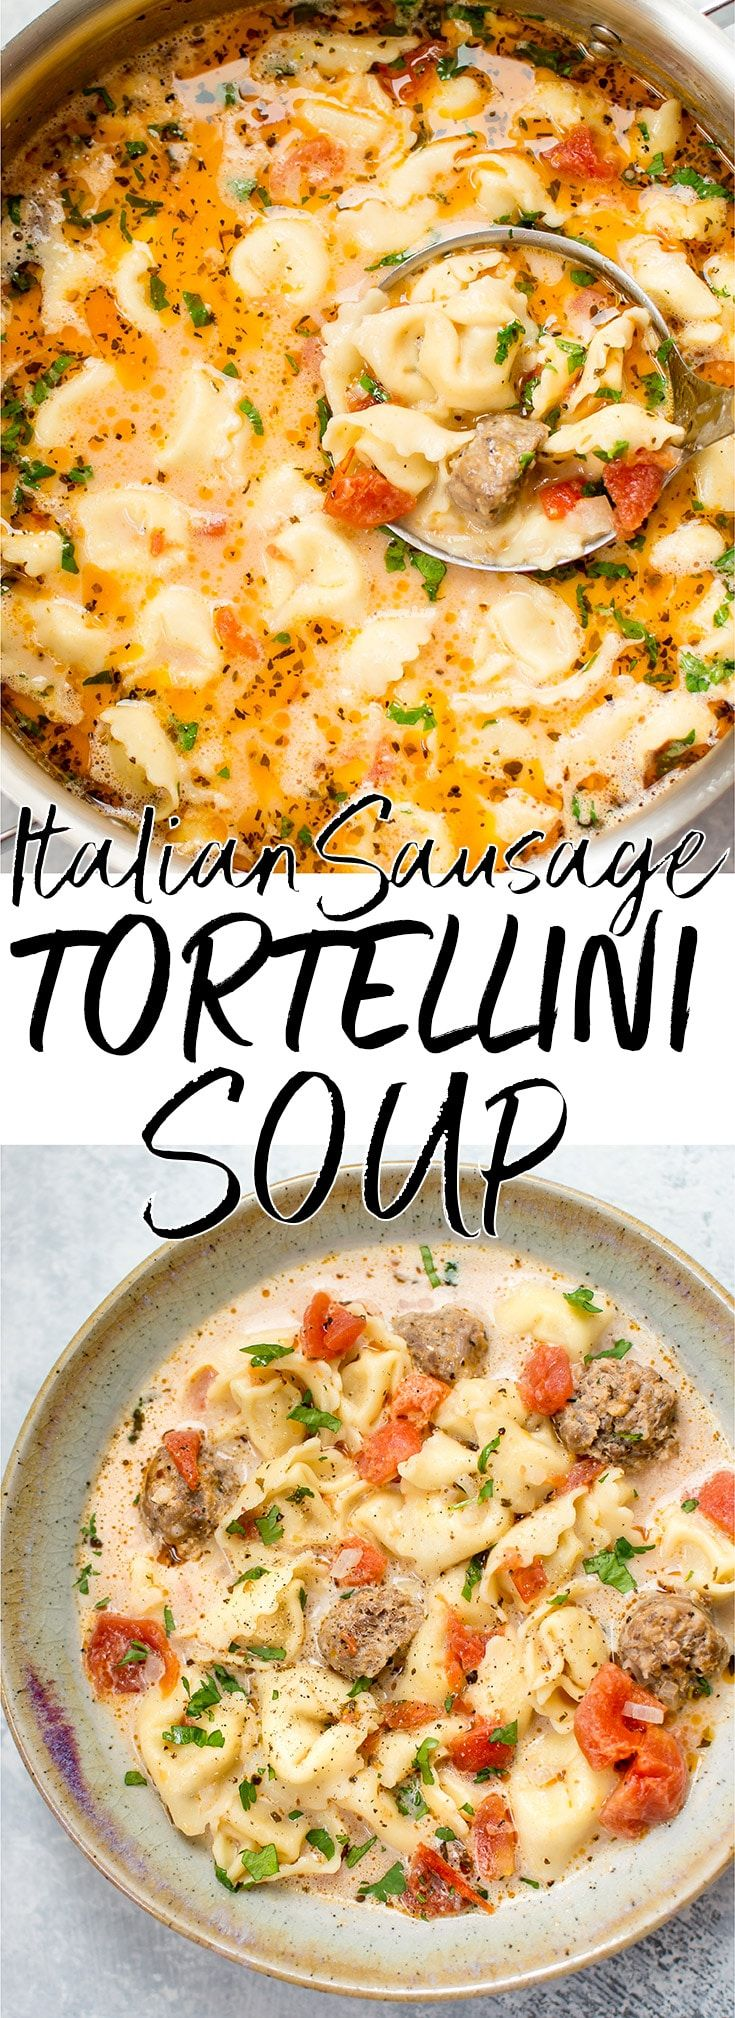 This Italian sausage and tortellini soup recipe is creamy, comforting, and very easy to make with very little prep time. #tortellinisoup #Italiansausage #sausagesoup